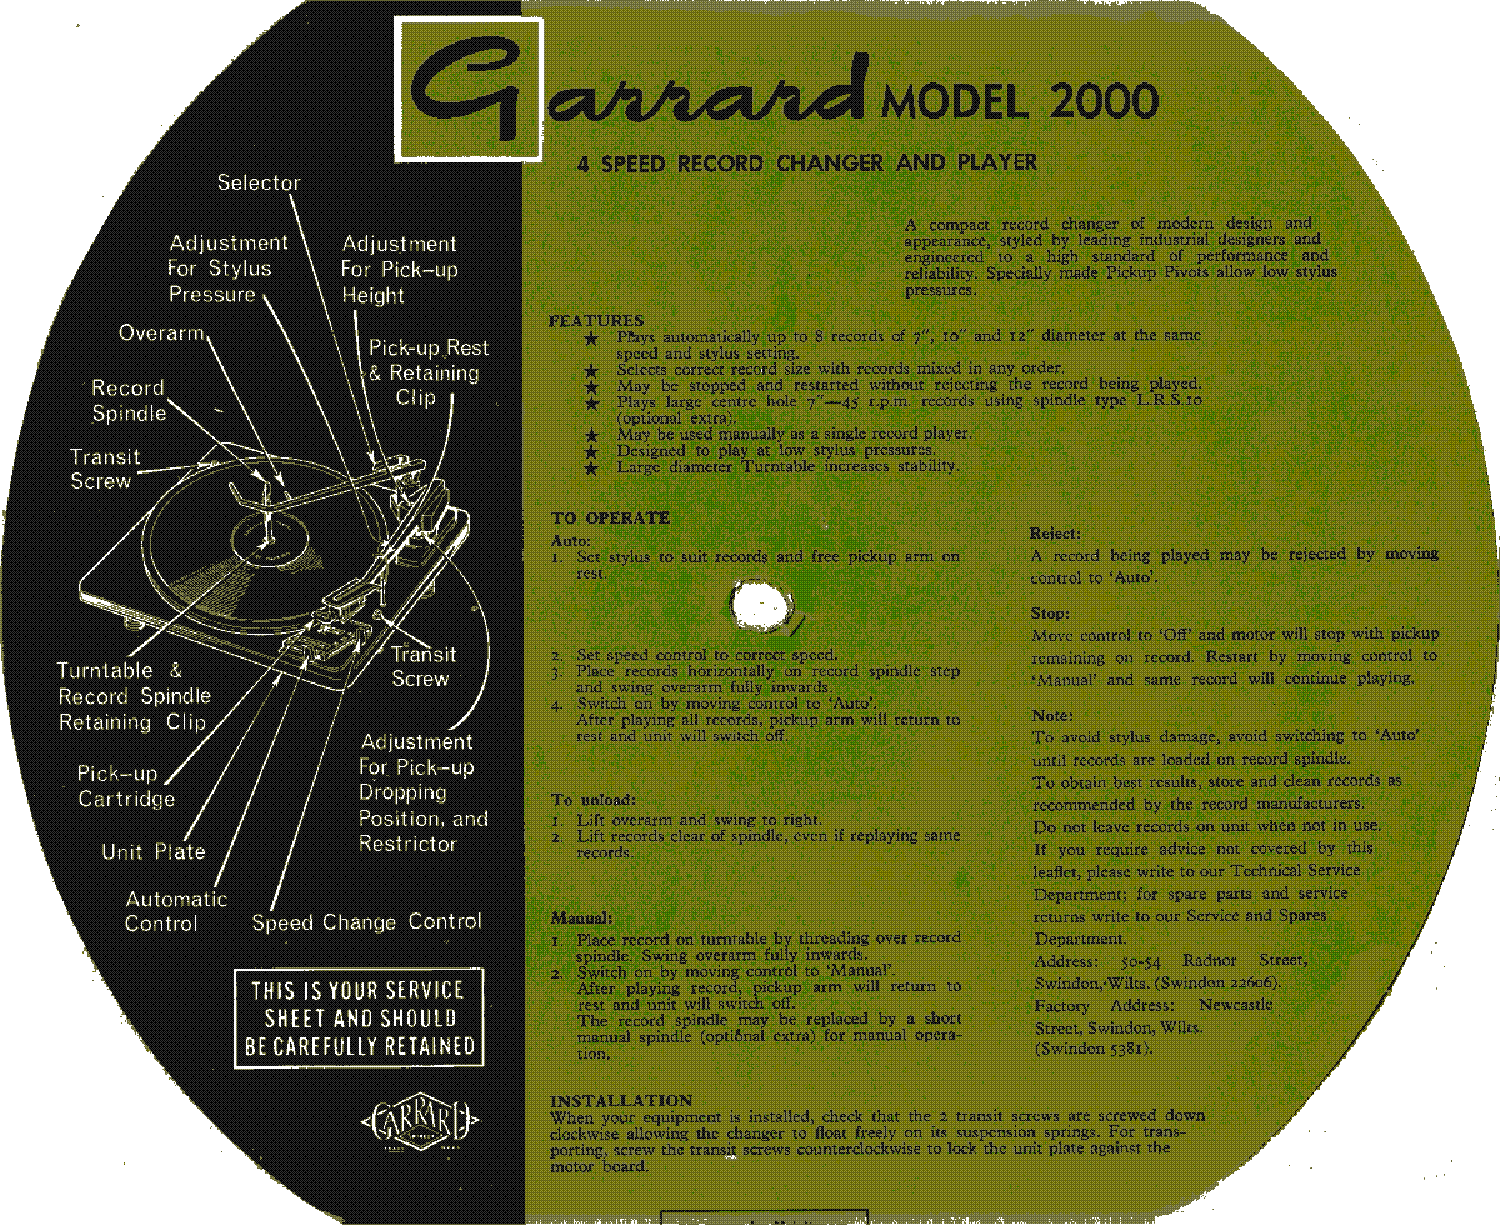 GARRARD 2000 4-SPEED RECORD CHANGER PLAYER SM Service Manual